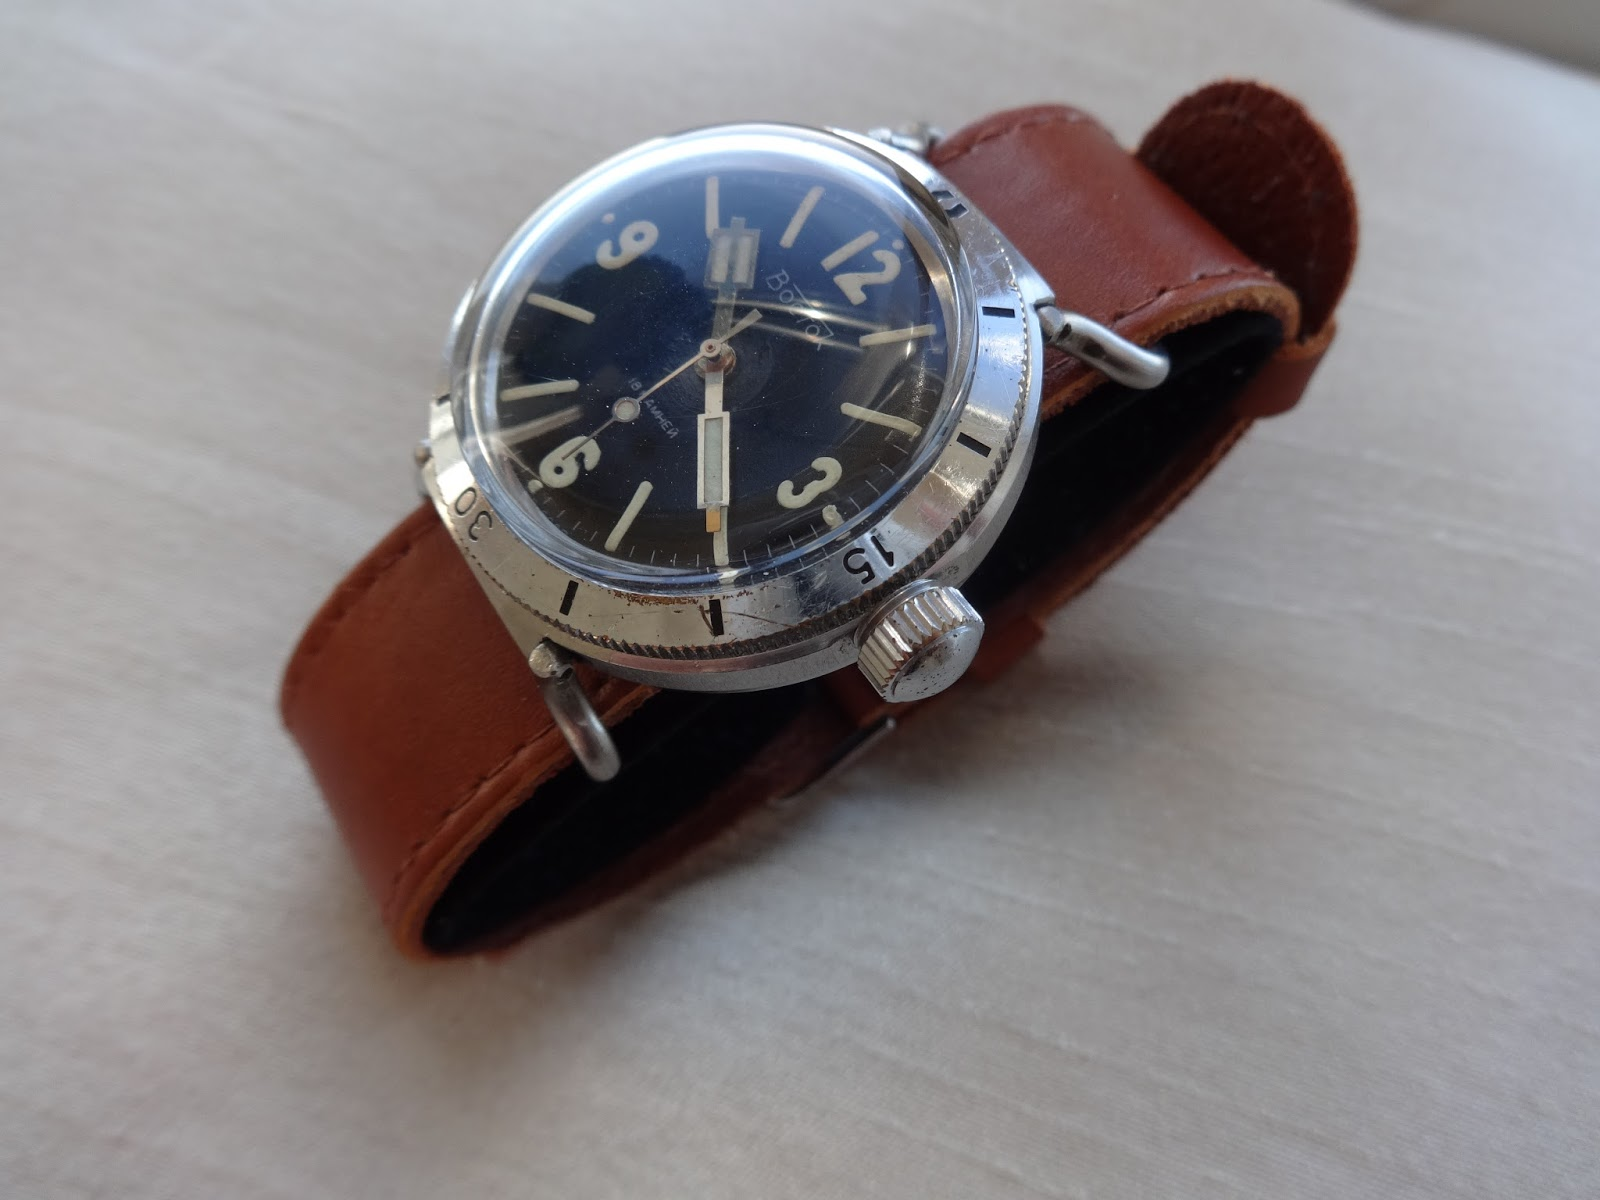 35a84785debe Just purchased a new military style one piece vintage leather strap